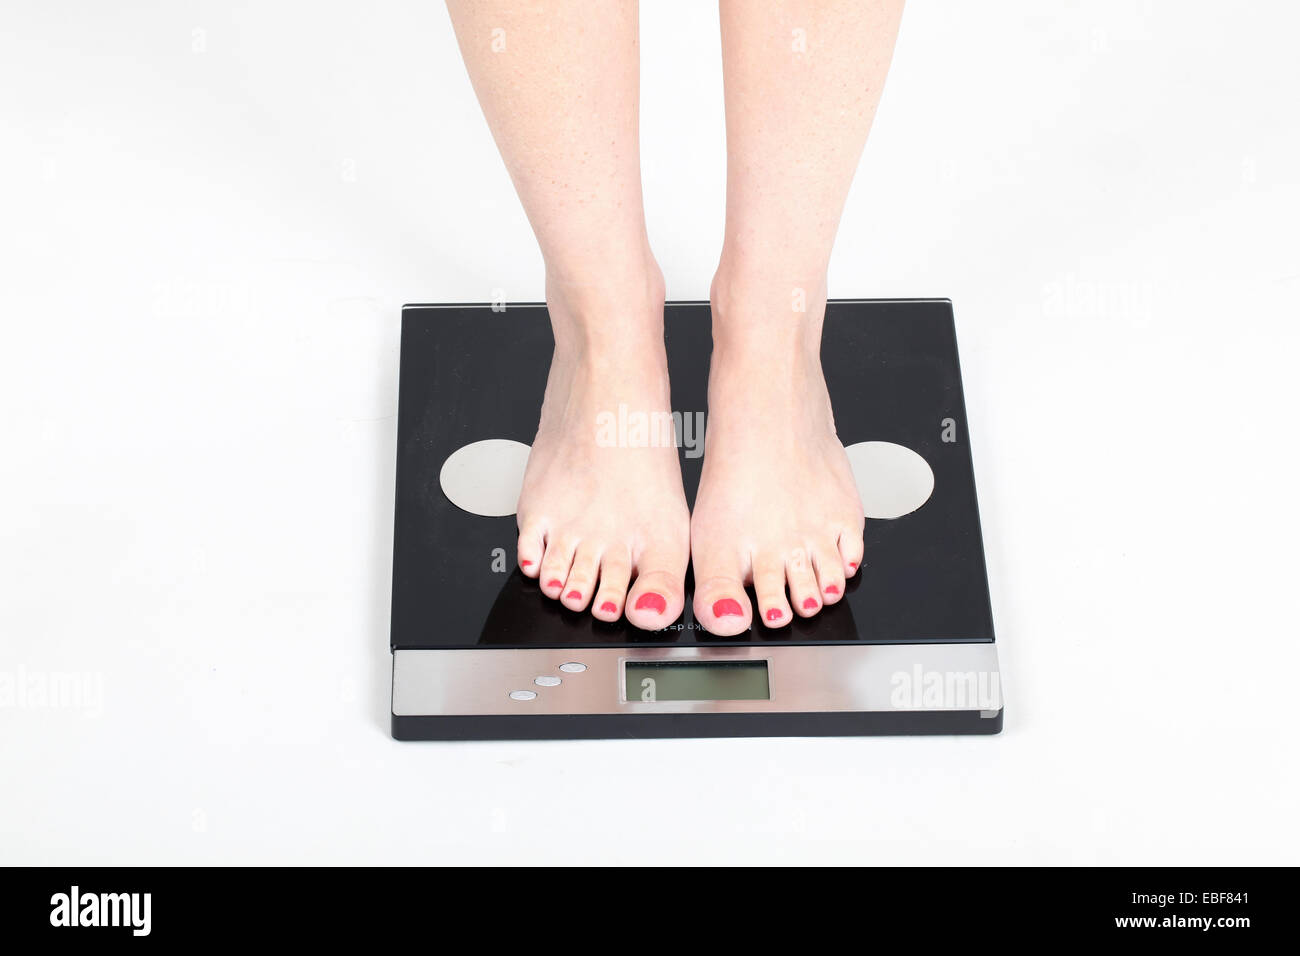 Woman's feet on scale Model released - Stock Image